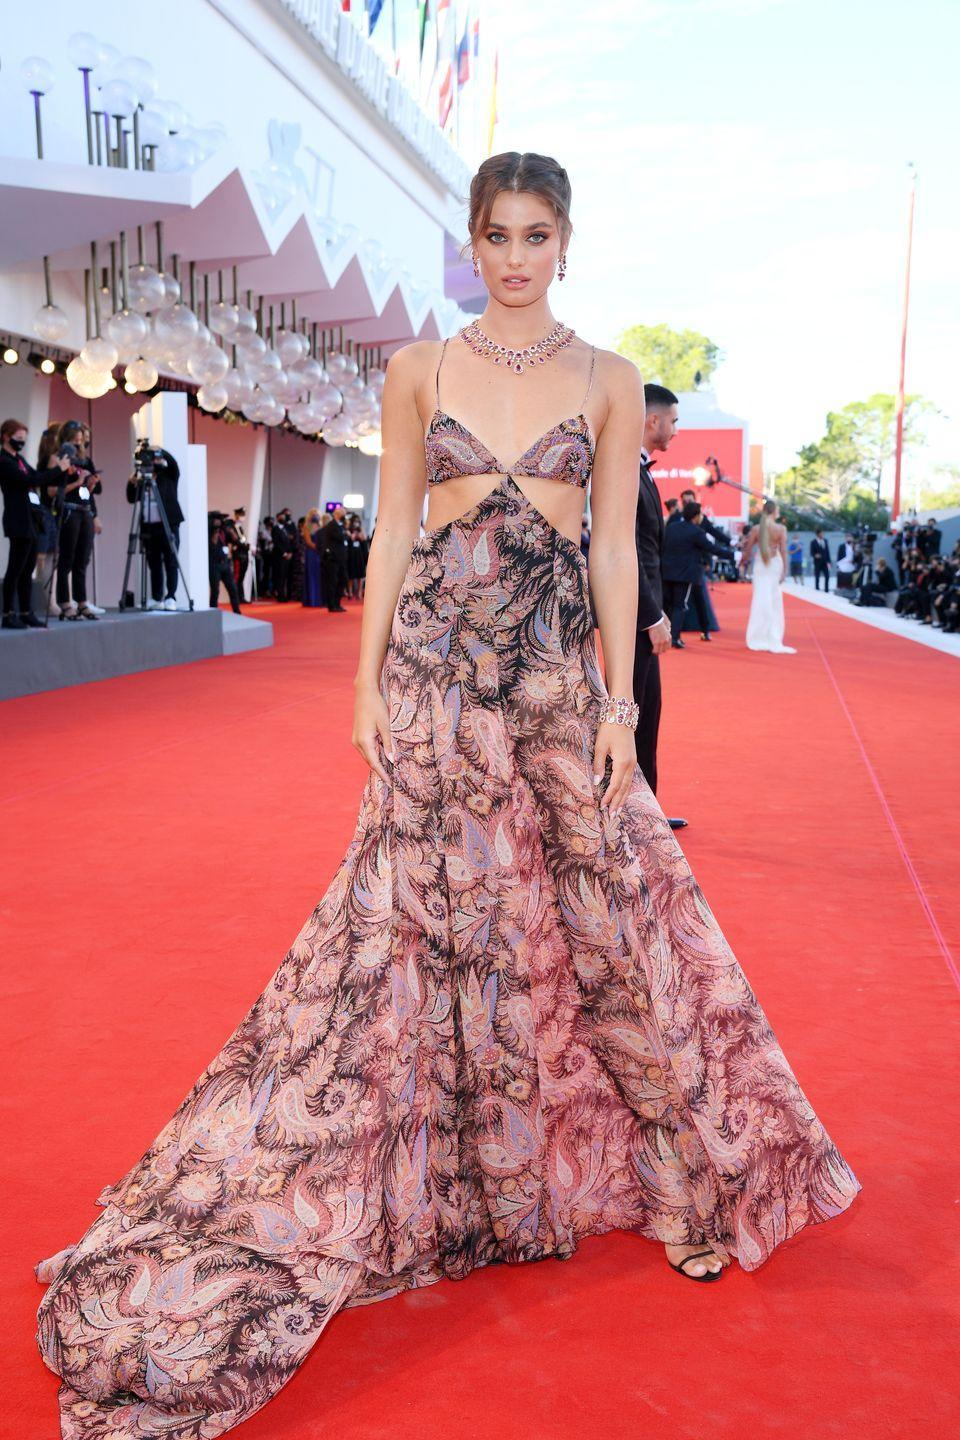 <p>Taylor Hill wears a paisley-printed dress by Etro and bold jewelry by Chopard. </p>